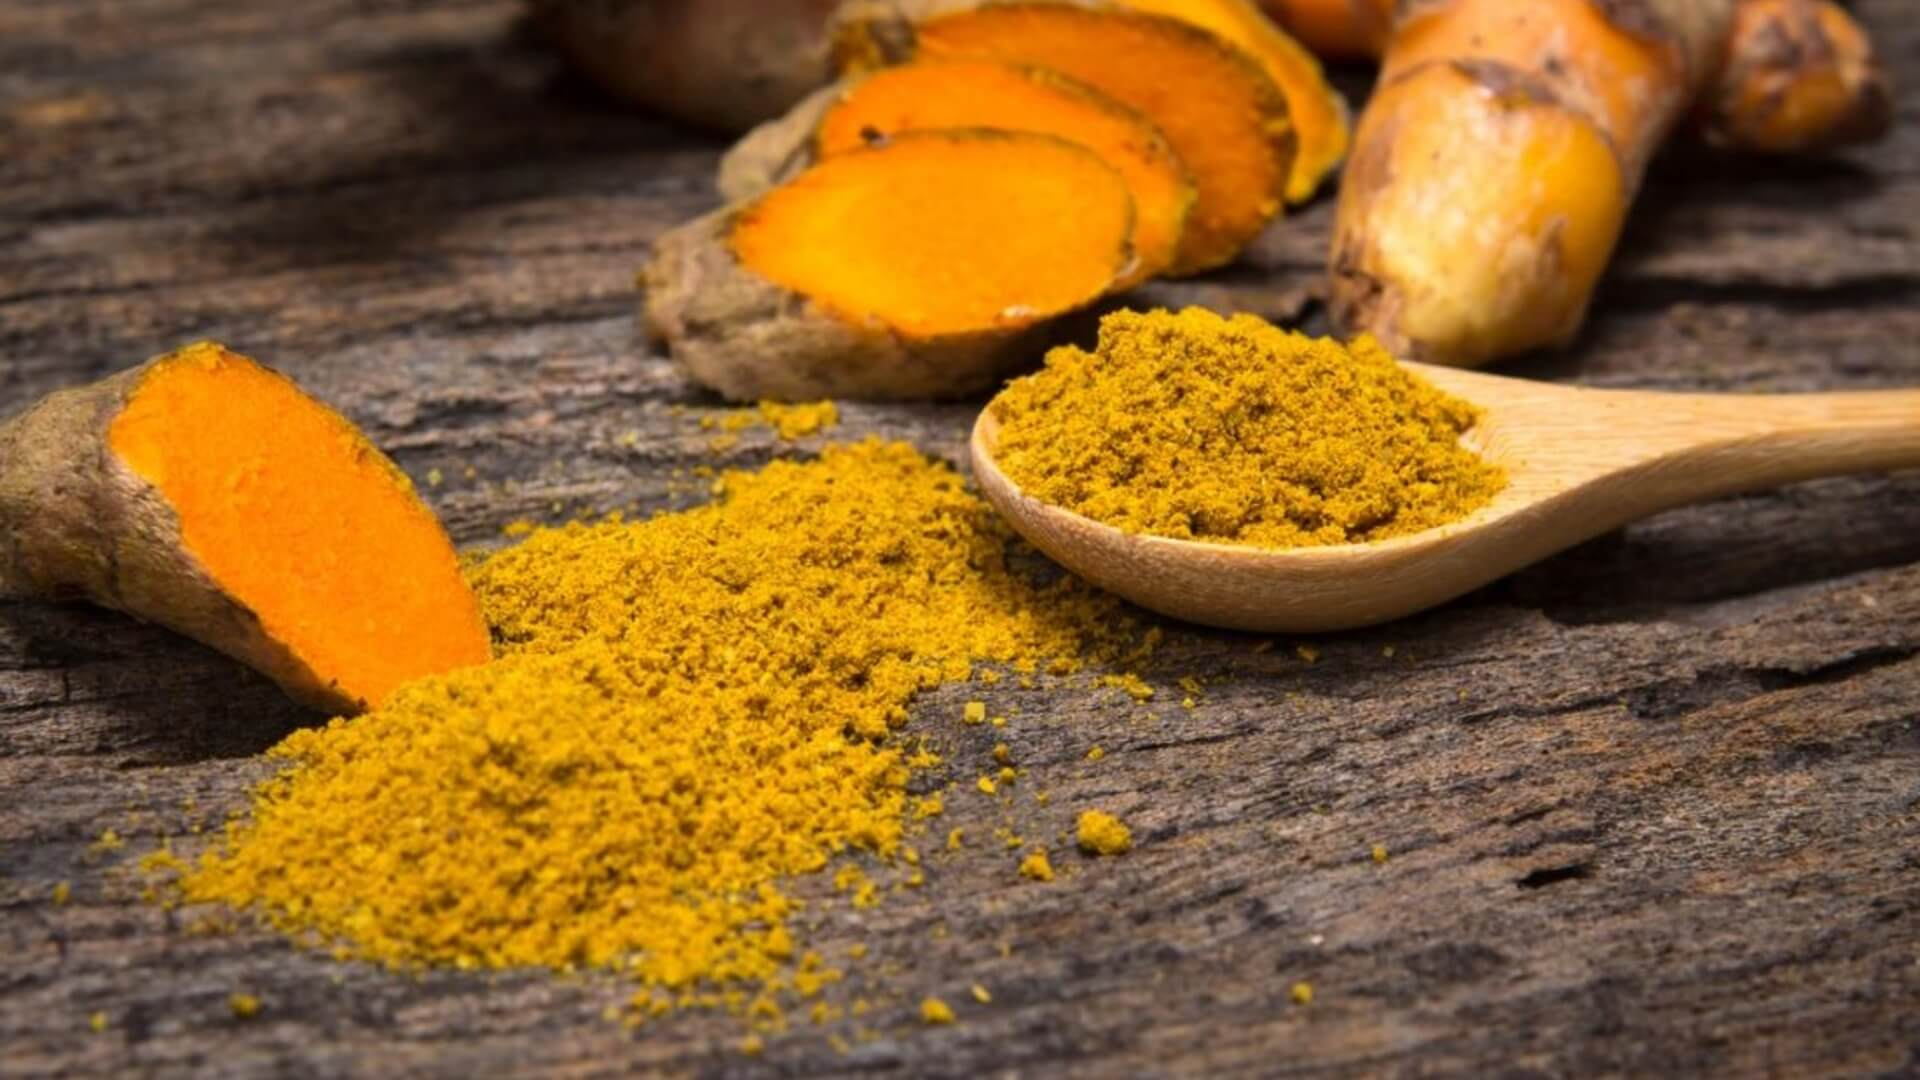 How does Turmeric help in oncology?